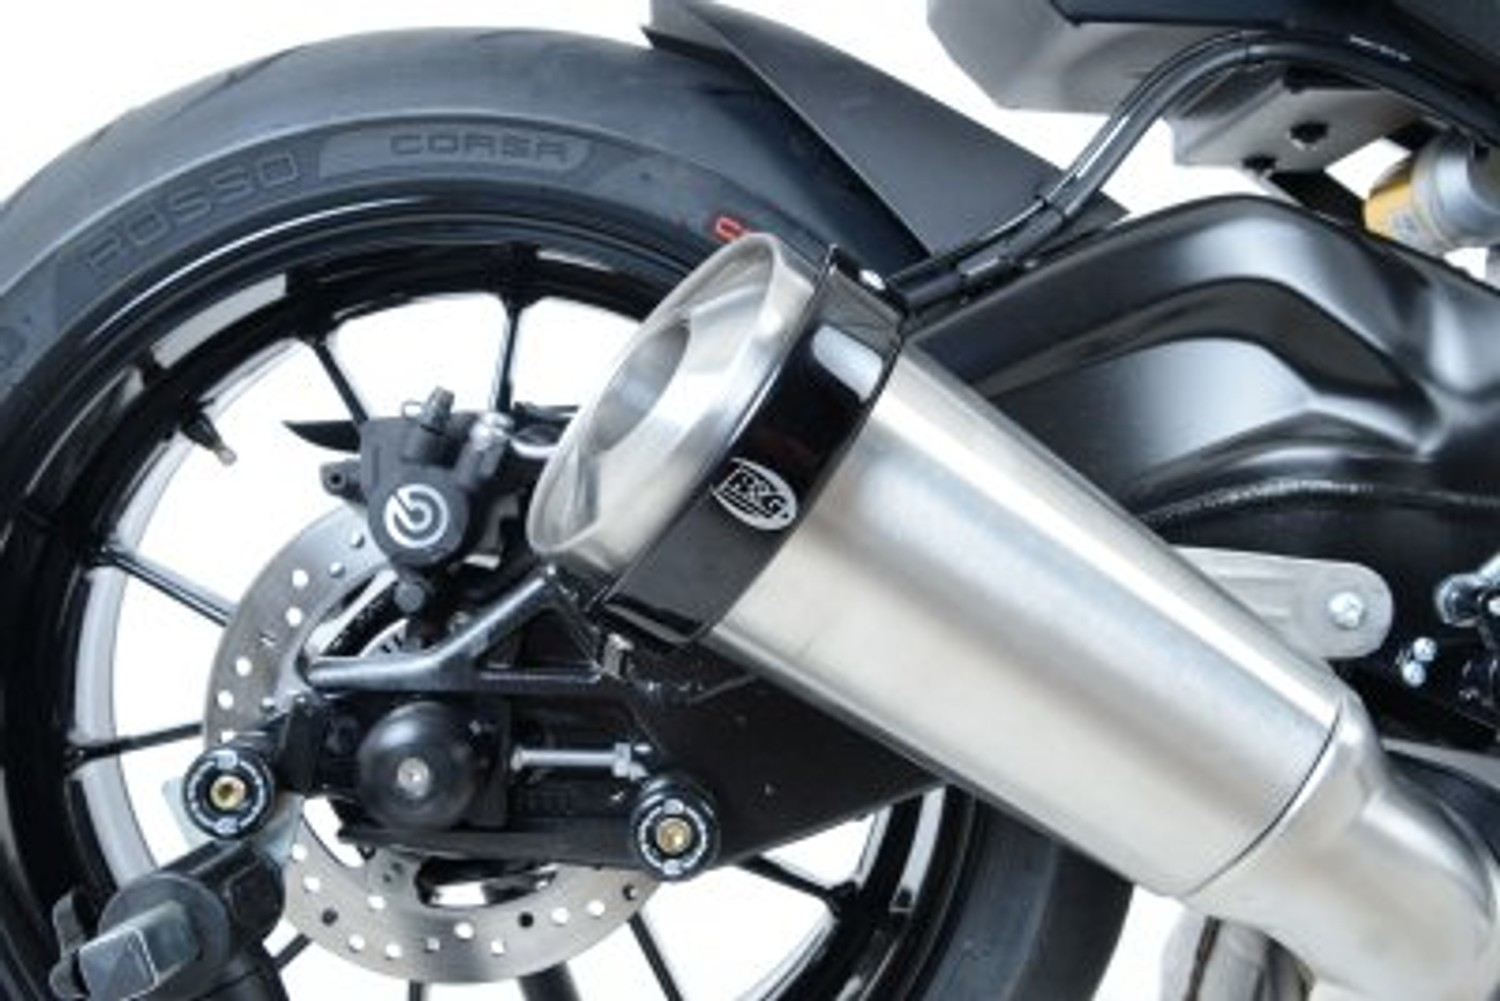 MOTORCYCLE R/&G RACING Oval Exhaust Protector Can Cover Triumph Speed Triple 2014